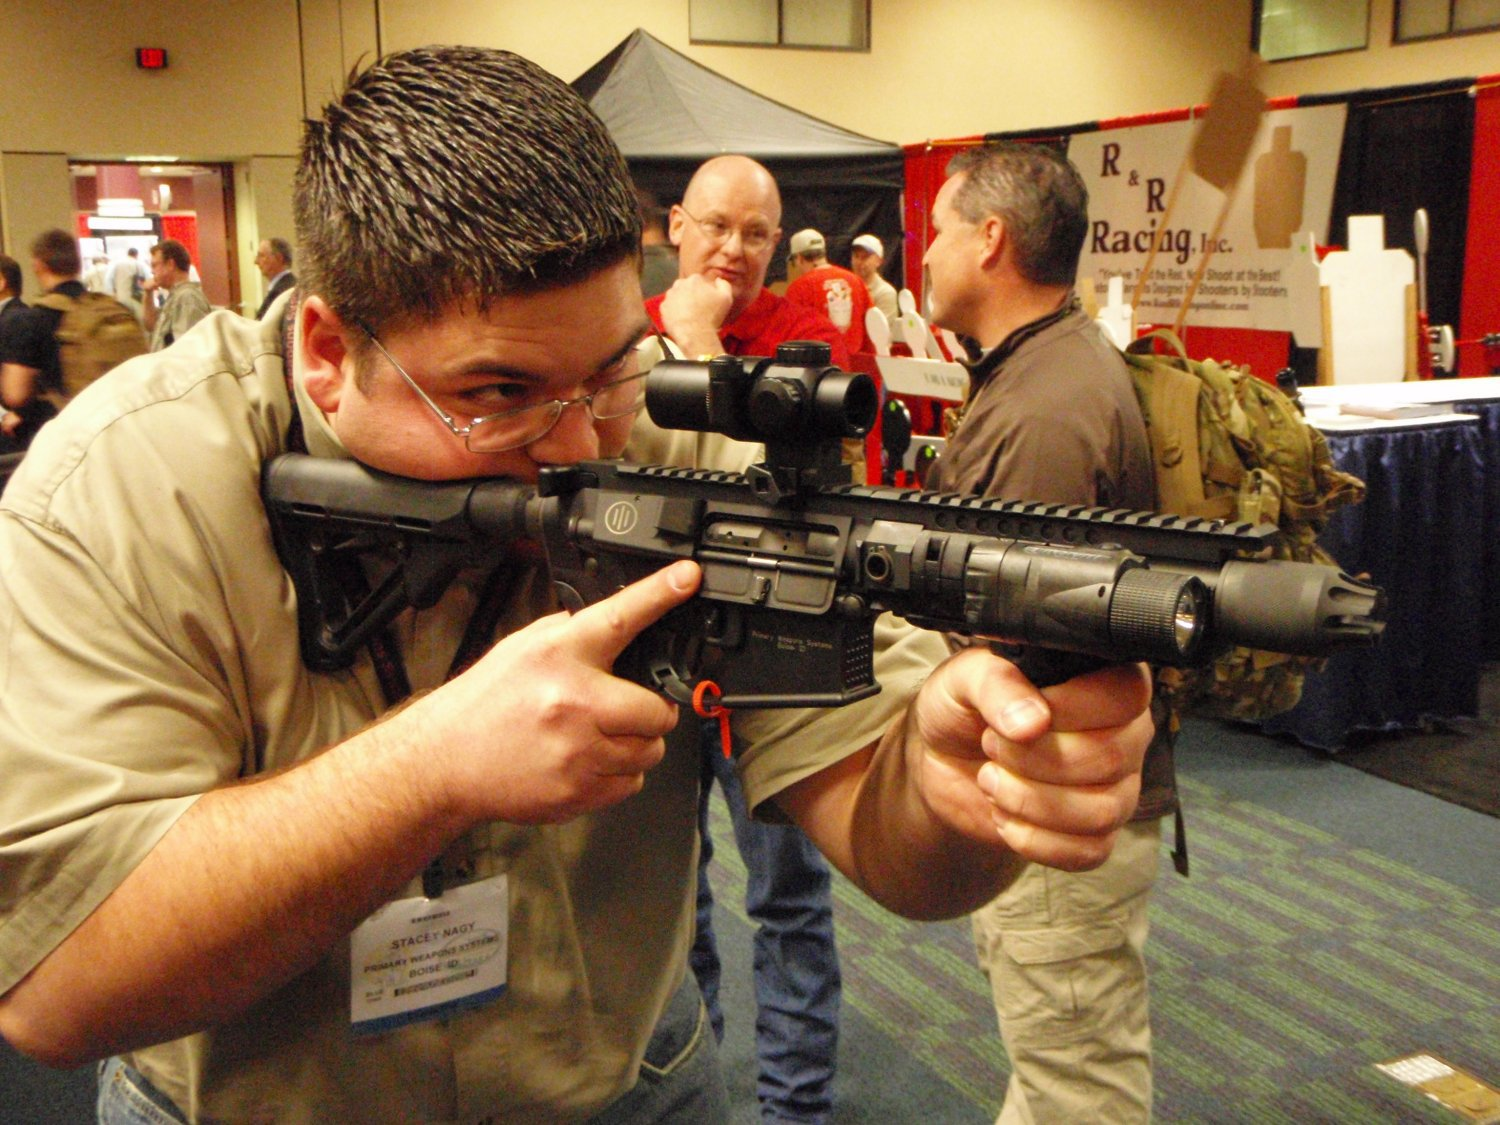 PWS Diablo Gas Piston SBR SHOT Show 2009 8 <!  :en  >PWS Diablo Long Stroke Gas Piston/Op Rod Driven 5.56mm AR 15 SBR Upper Receiver<!  :  >